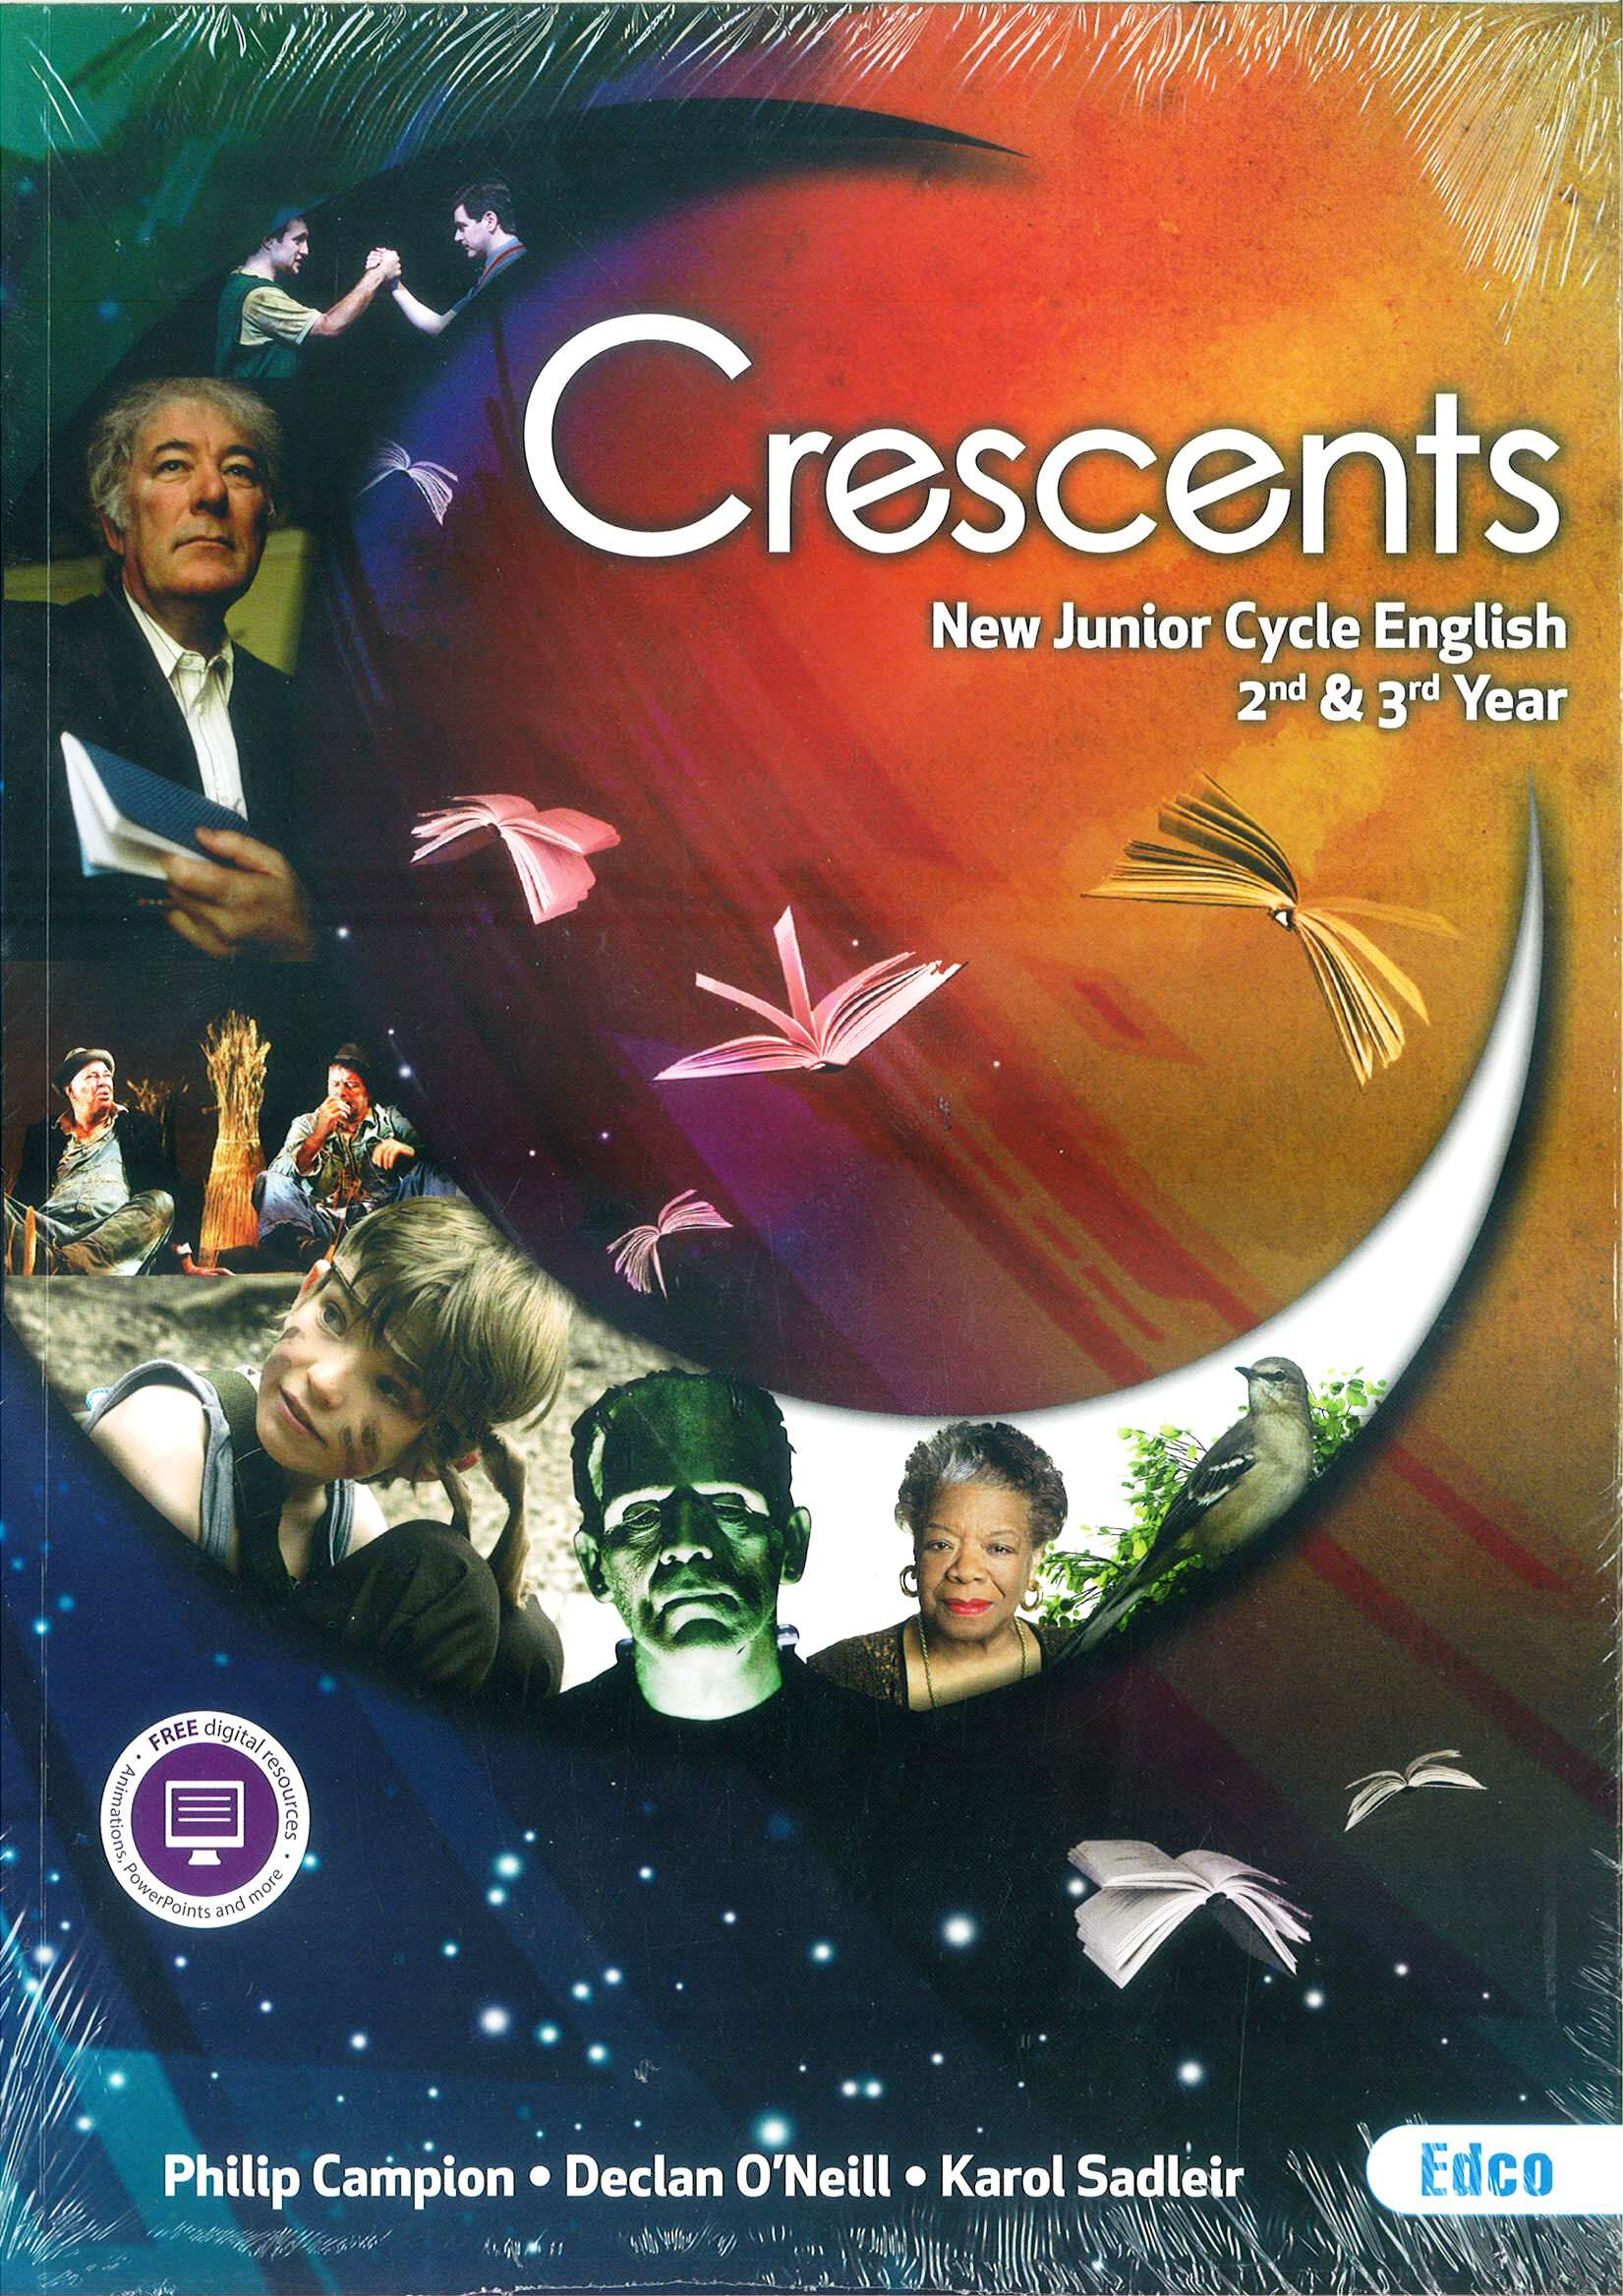 Cresents Pack - New Junior Cycle English For Second & Third Year